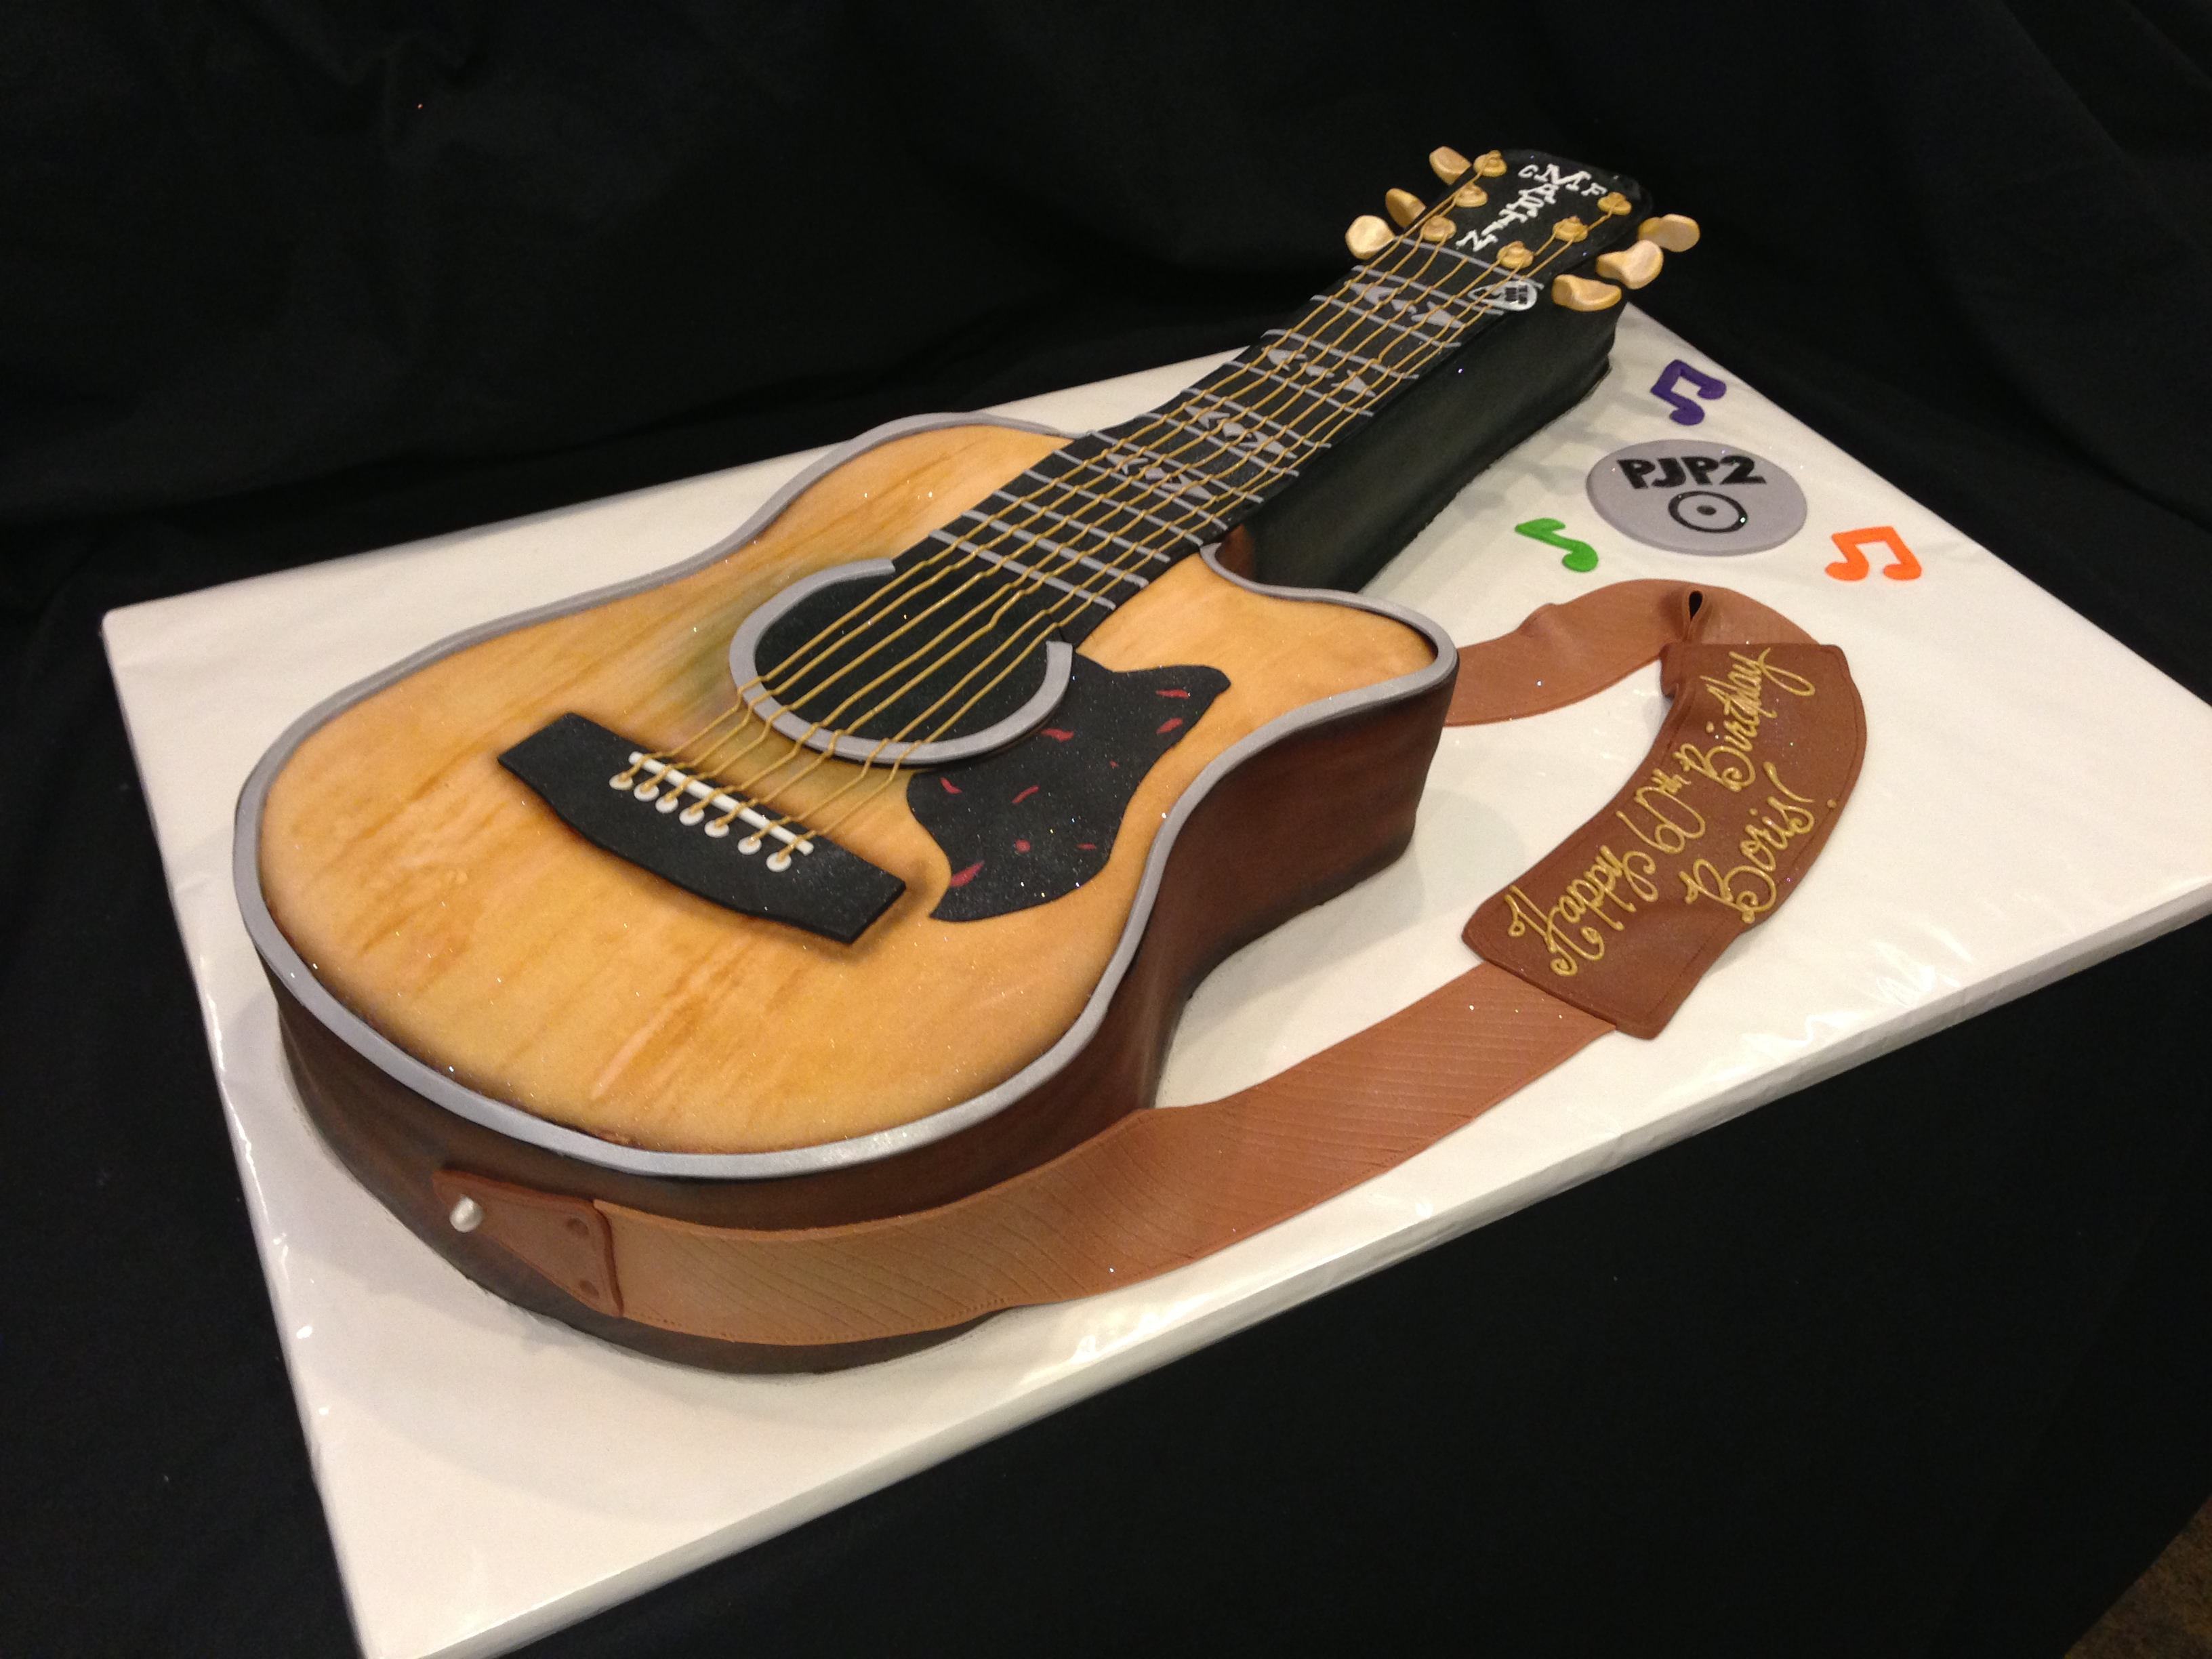 Terrific 12 Birthday Cakes With Guitars On Them Photo Guitar Birthday Funny Birthday Cards Online Barepcheapnameinfo